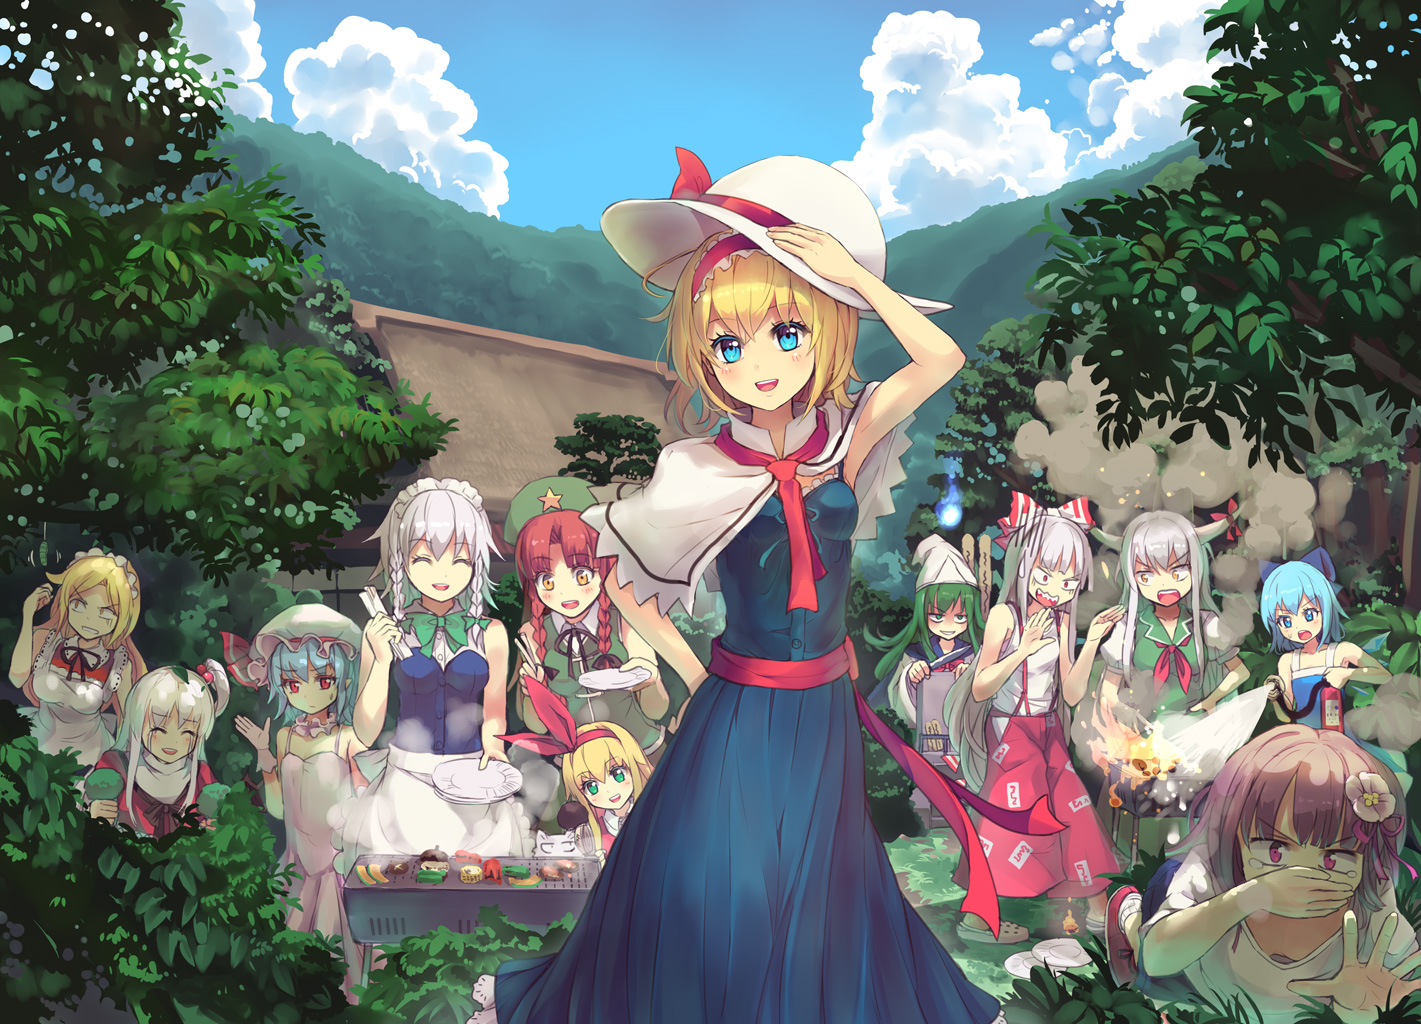 alice_margatroid building cirno clouds culter ellen fairy food fujiwara_no_mokou group hieda_no_akyuu hong_meiling izayoi_sakuya kamishirasawa_keine leaves maid mima remilia_scarlet shinki sky sokrates_(touhou) touhou vampire yumeko